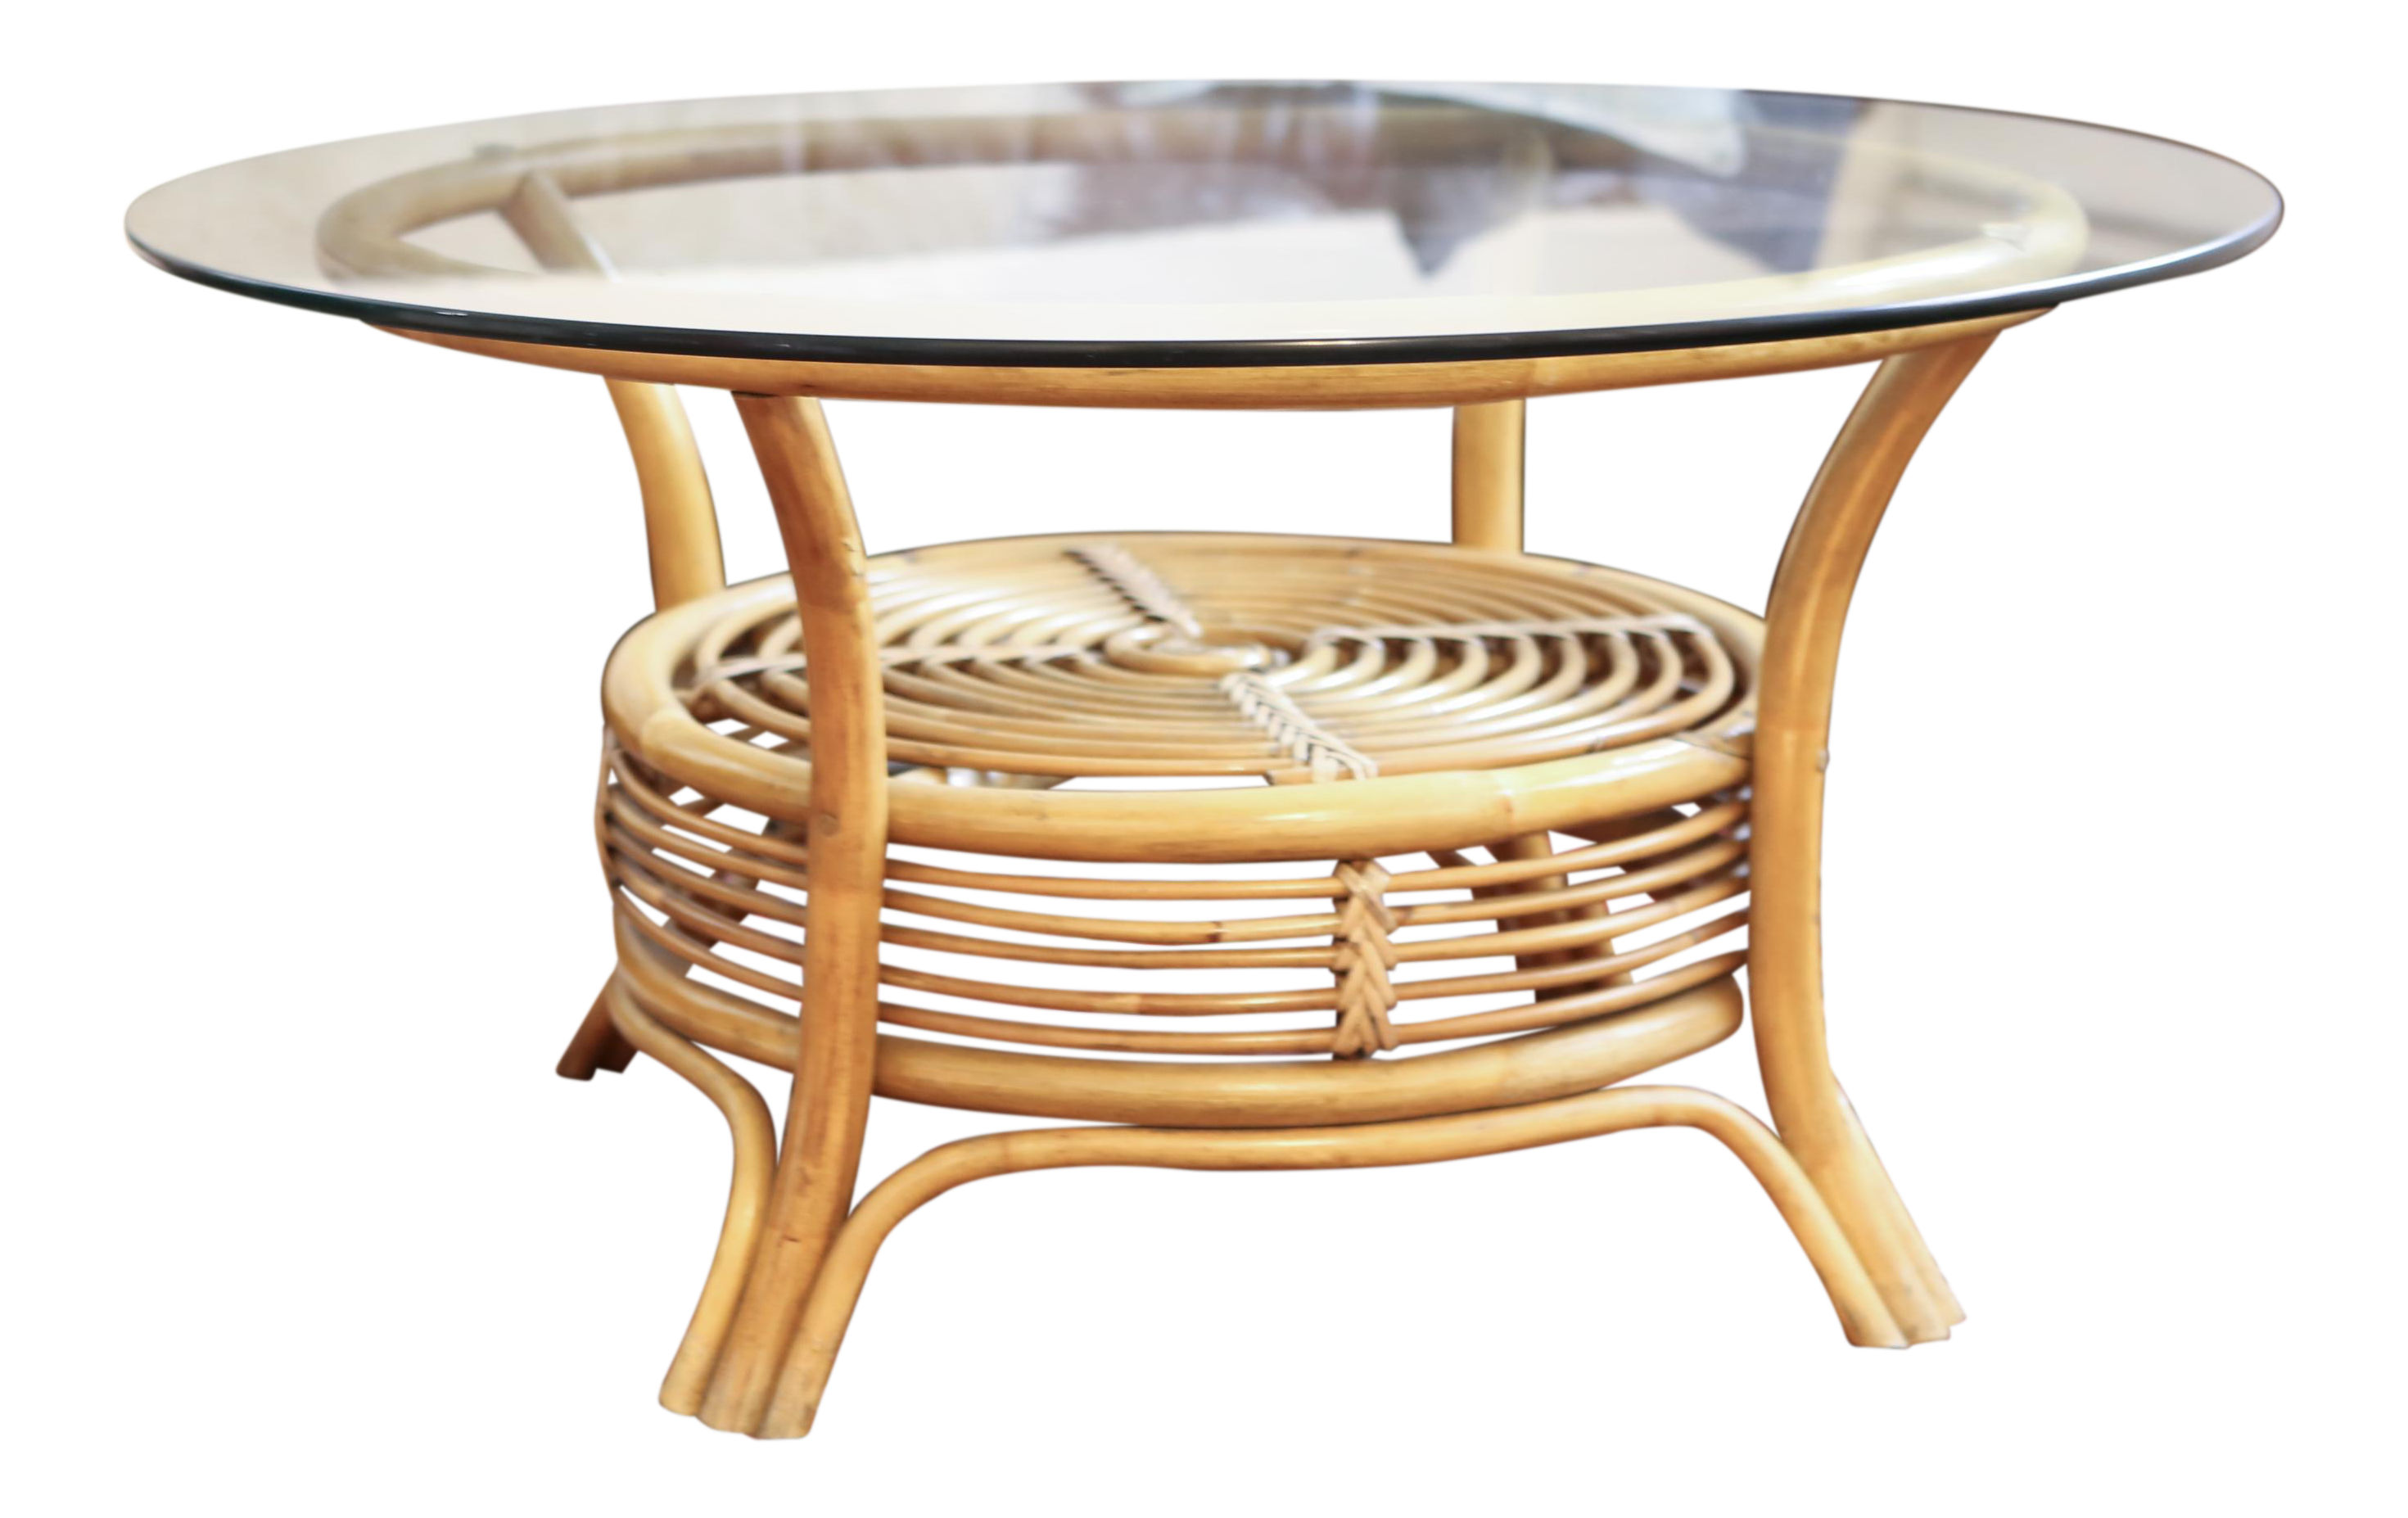 round rattan bamboo pencil reed glass top coffee table chairish and end off white black dog crate furniture toscana nest tables diy with drawer patio cleaner lexington